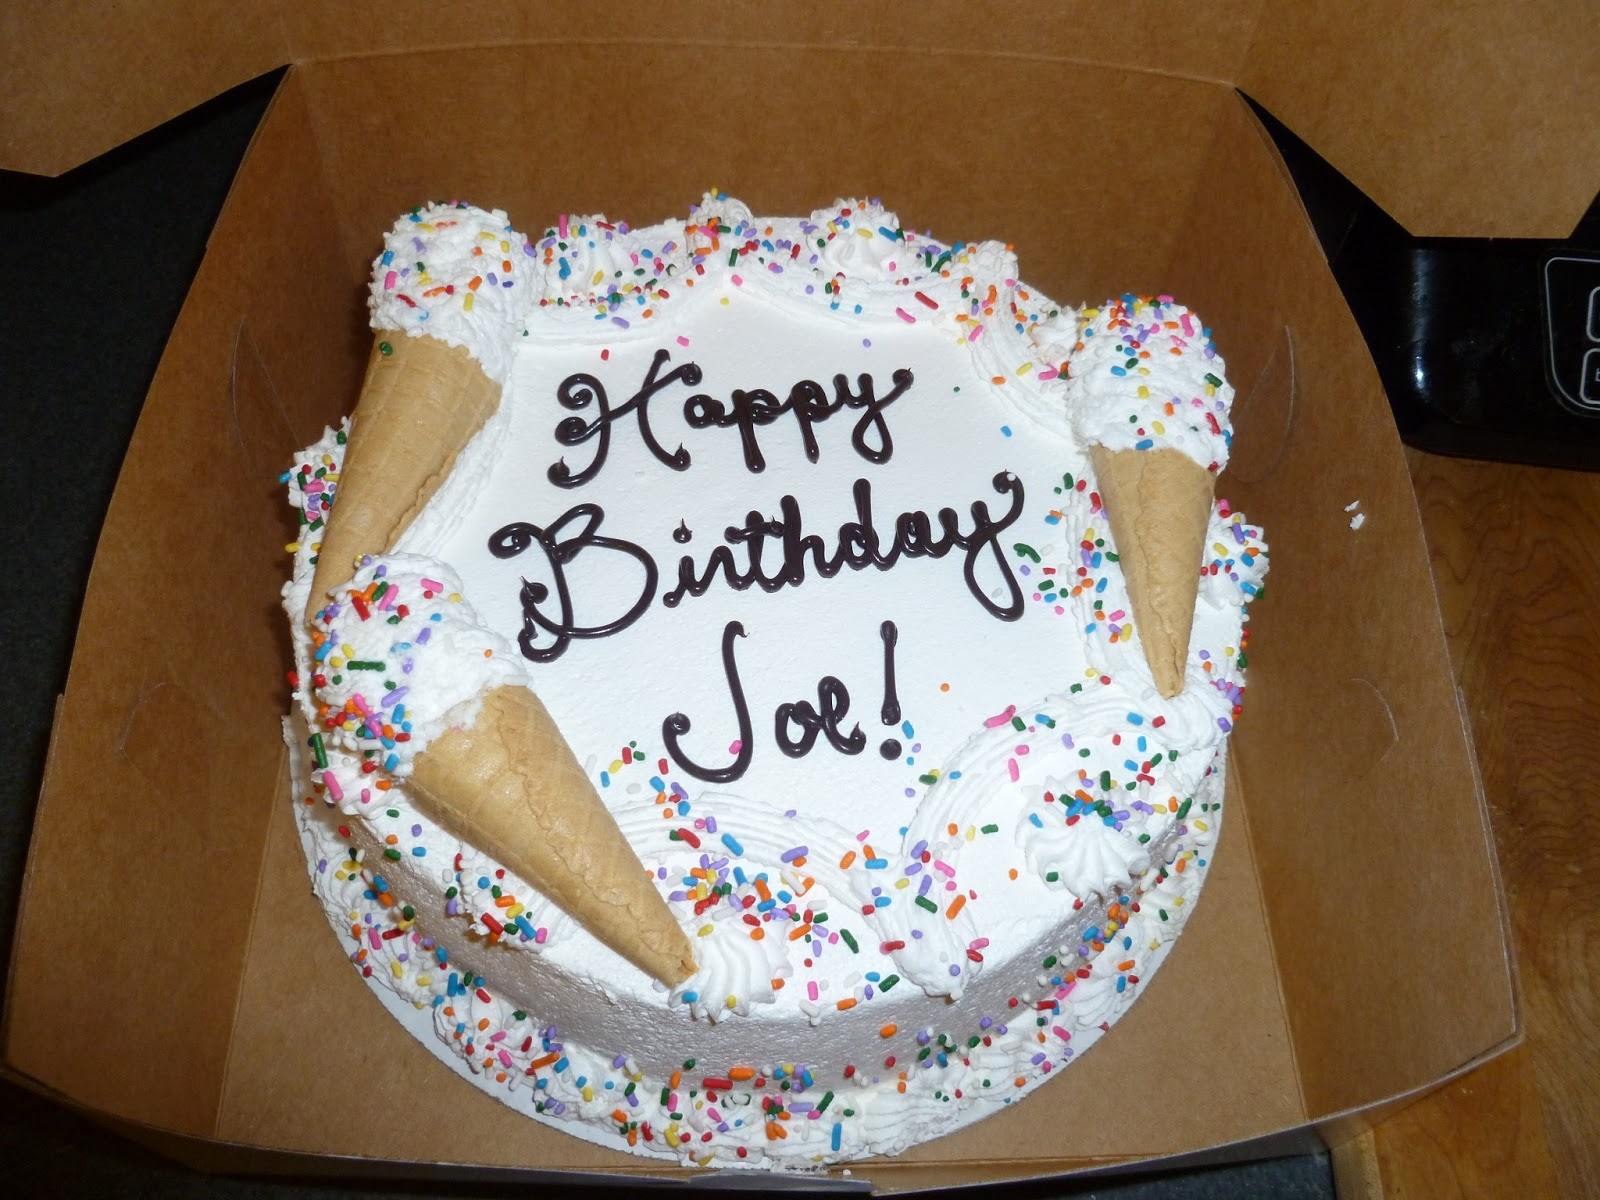 happy birthday uncle joe ; JoeBirthdayCake